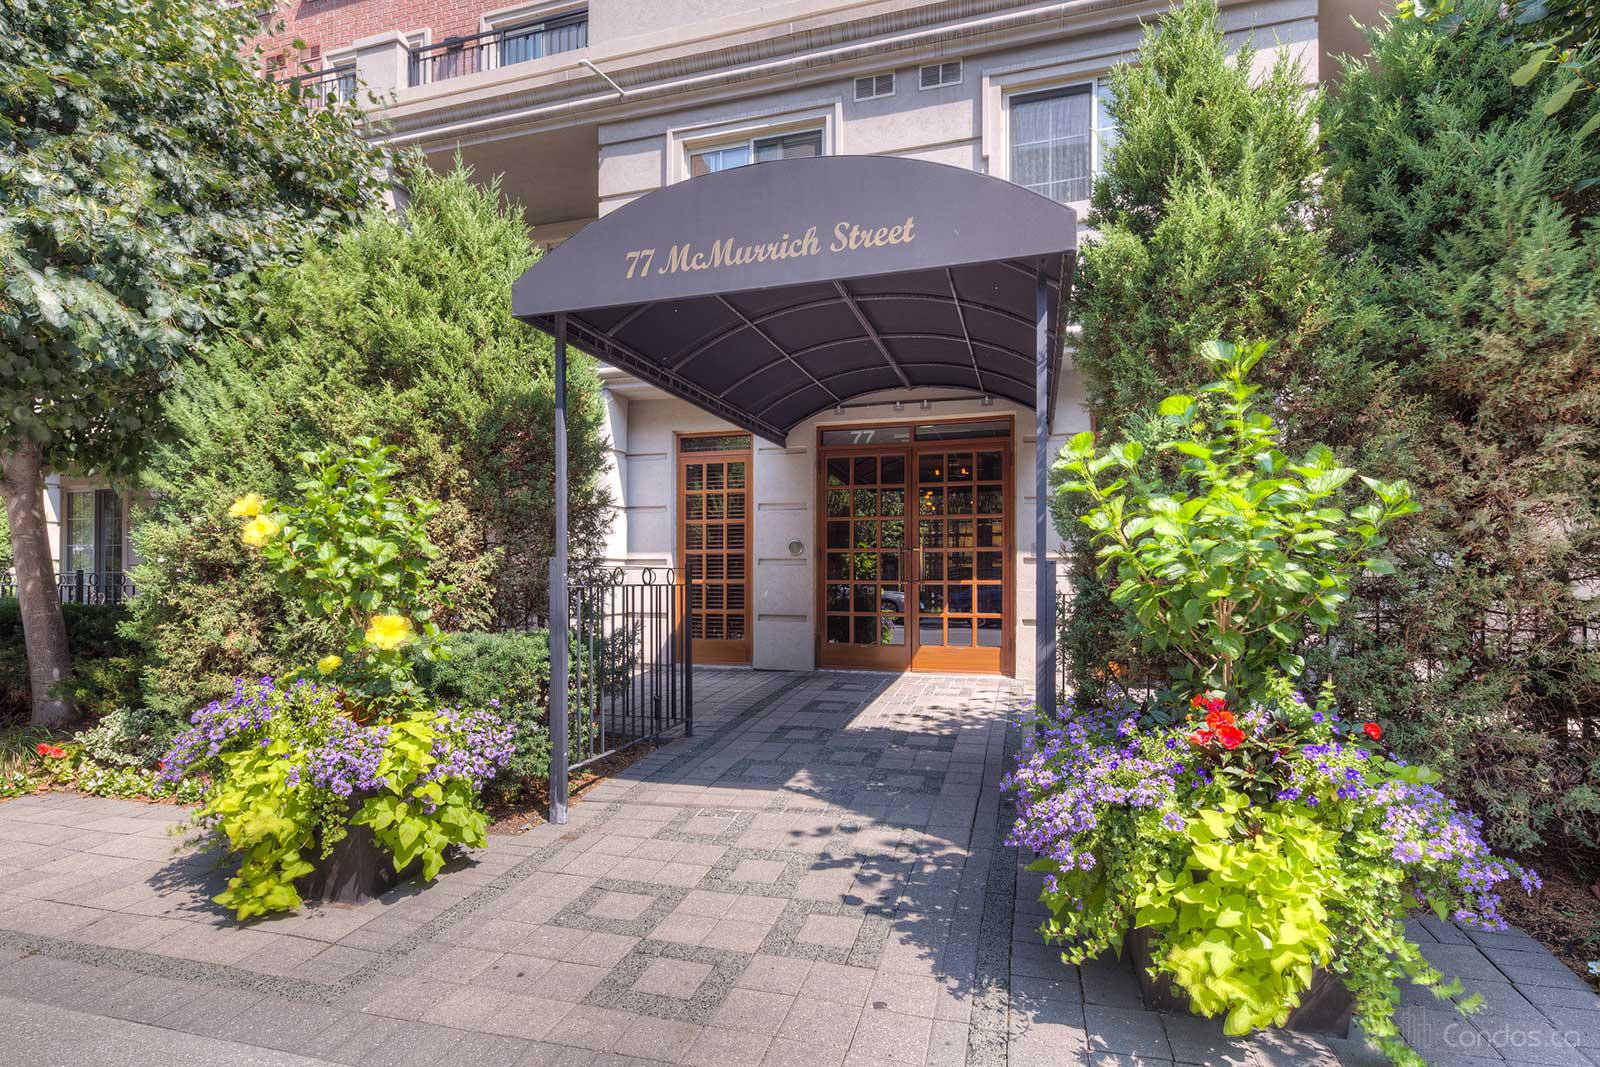 McMurrich Residences at 77 Mcmurrich St, Toronto 0